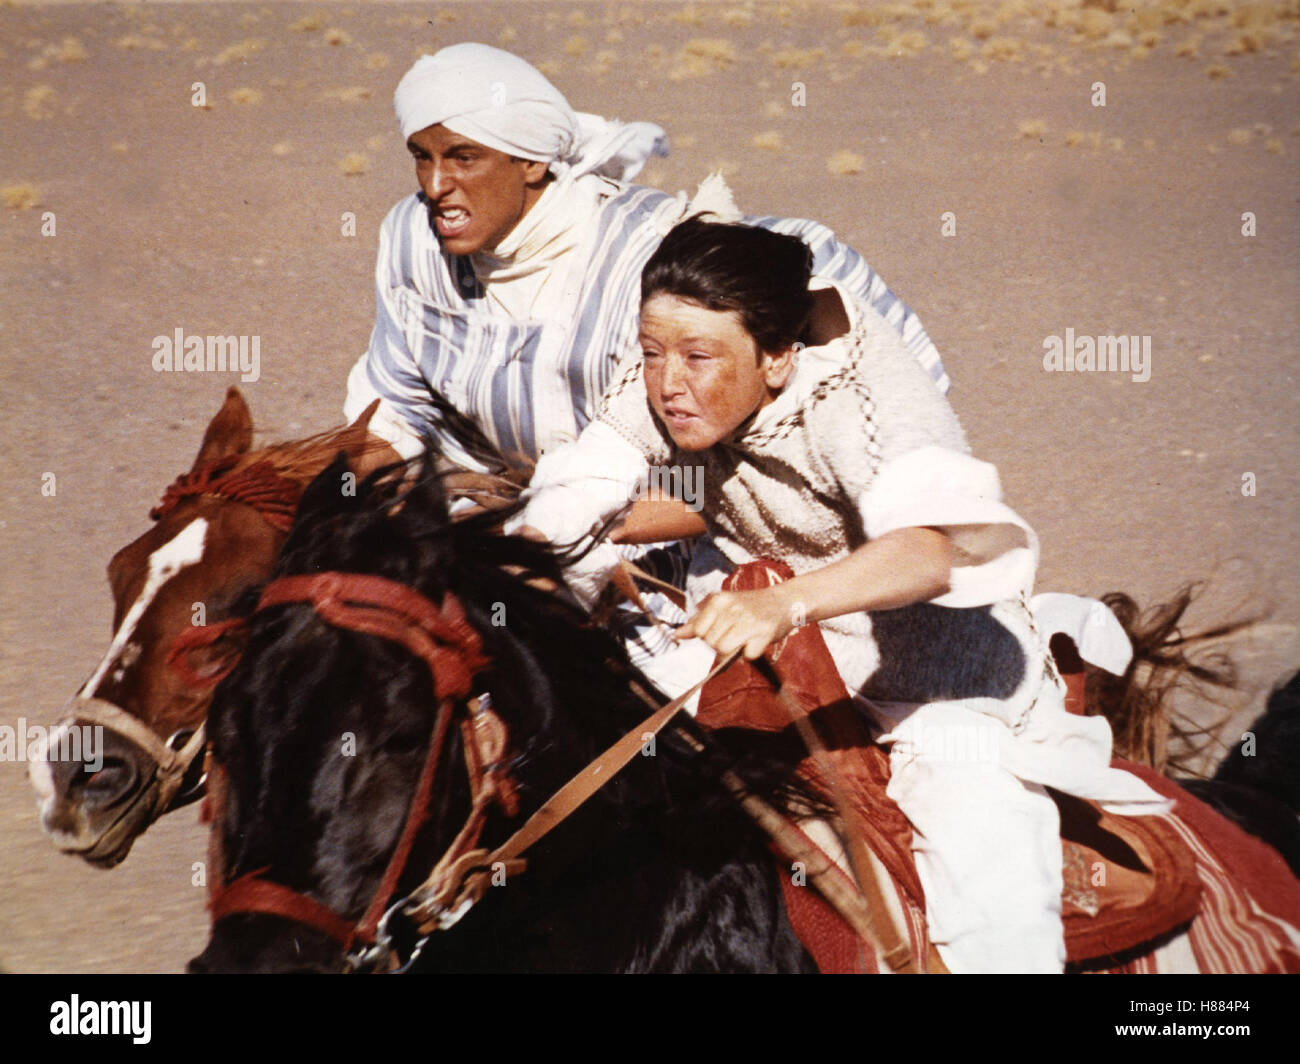 Der schwarze Hengst kehrt zurück, (THE BLACK STALLION RETURNS) USA 1981, Regie: Robert Dalva, VINCENT SPANO, - Stock Image